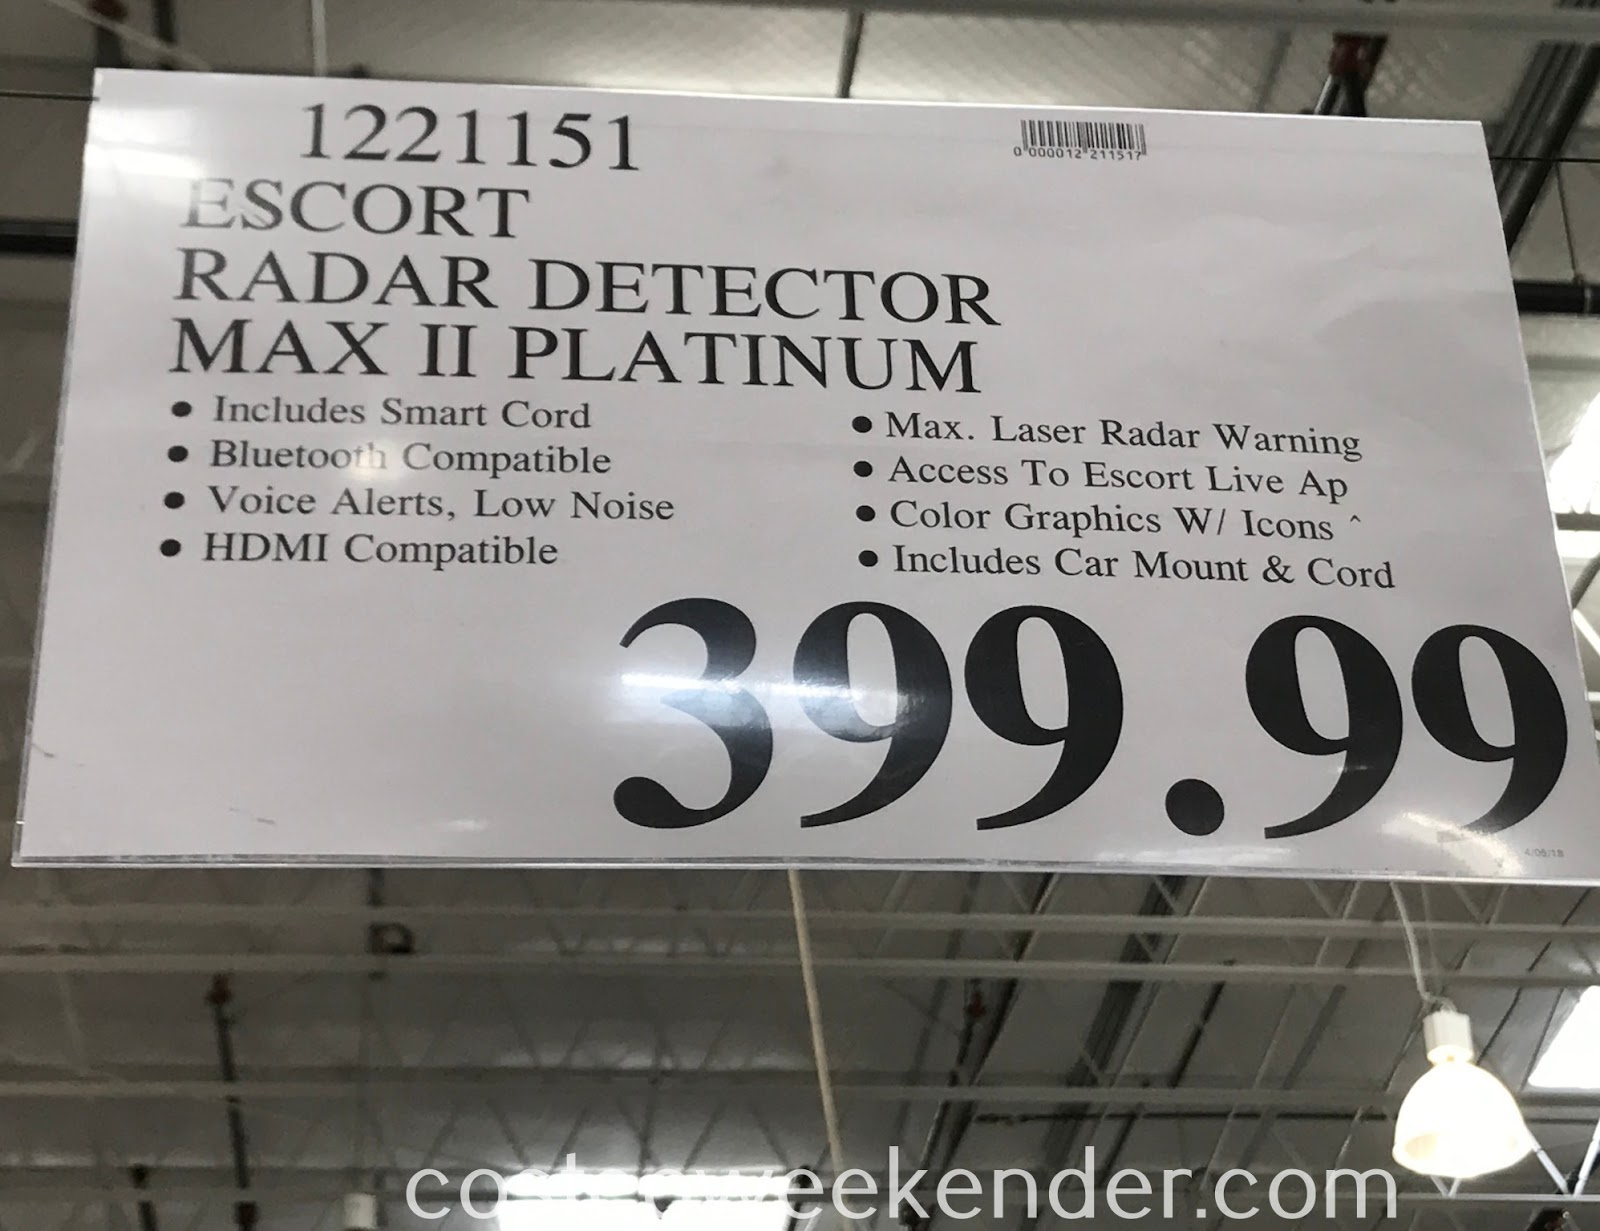 Deal for the Escort Max II Platinum Radar Detector at Costco